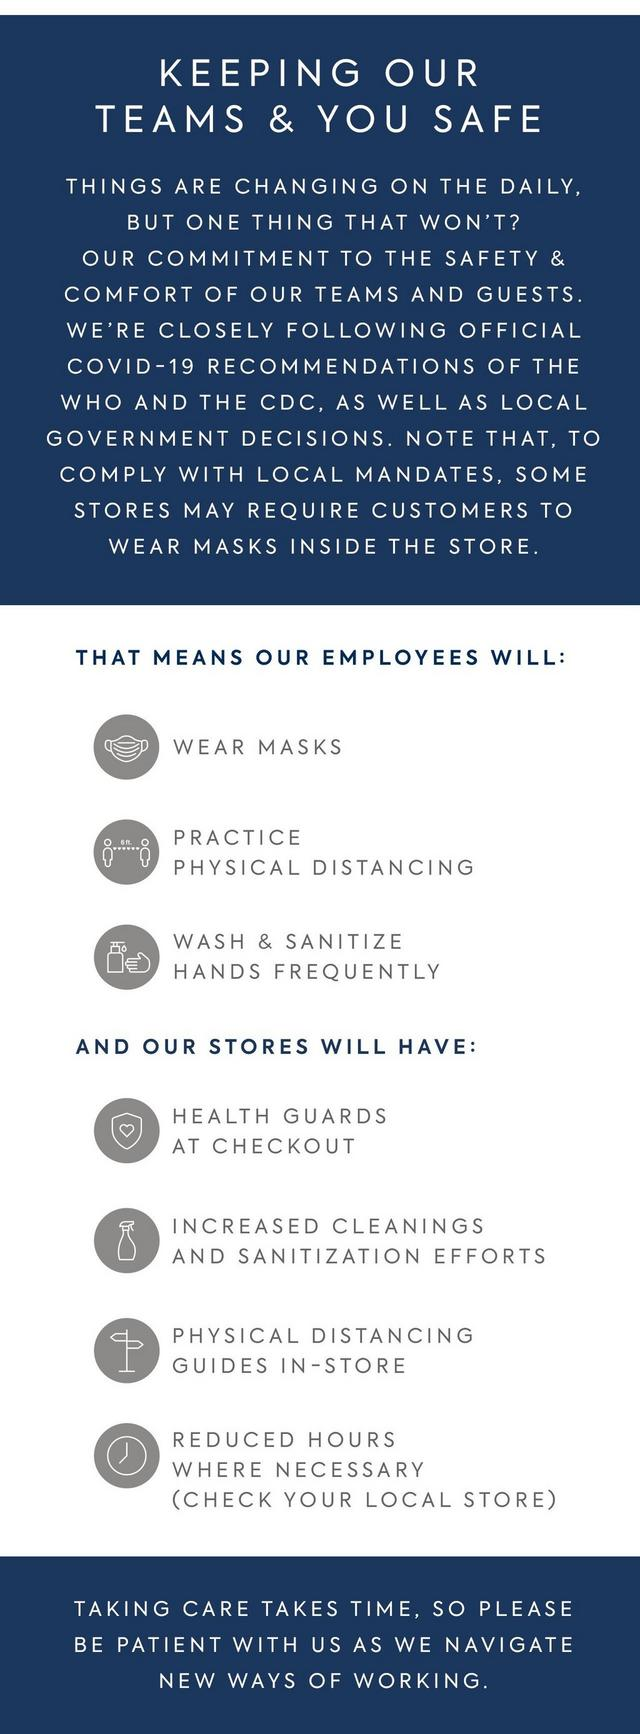 We're closely following official COVID-19 recommendations of the WHO and the CDC, as well as local government decisions. That means our employees will wear masks, practice physical distancing, and wash and sanitize hands frequently.